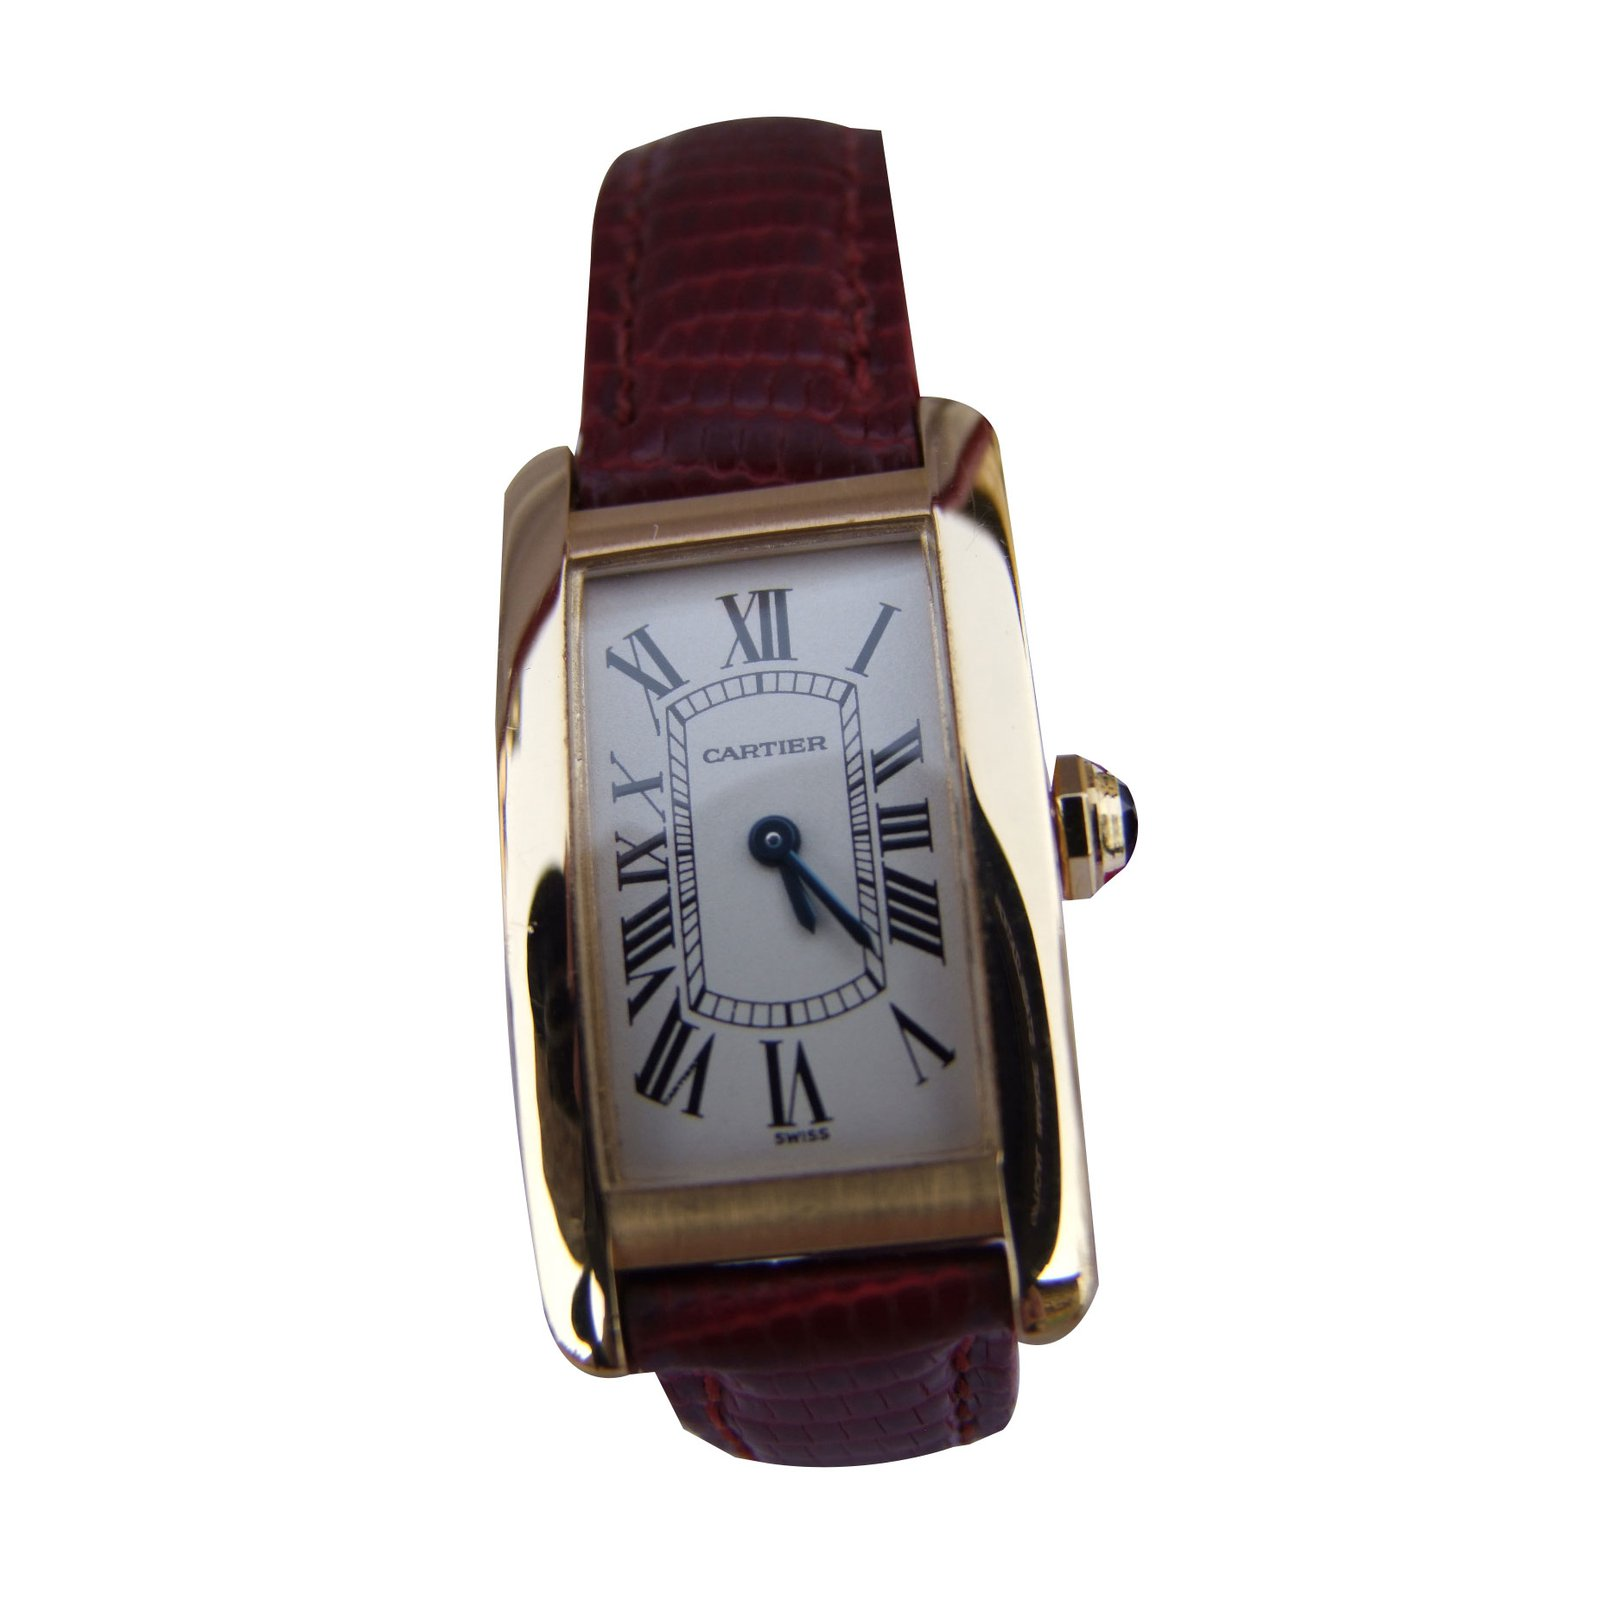 reebonz mode watches francaise stainless sm bgcolor women vn fff cartier vietnam steel tank pad